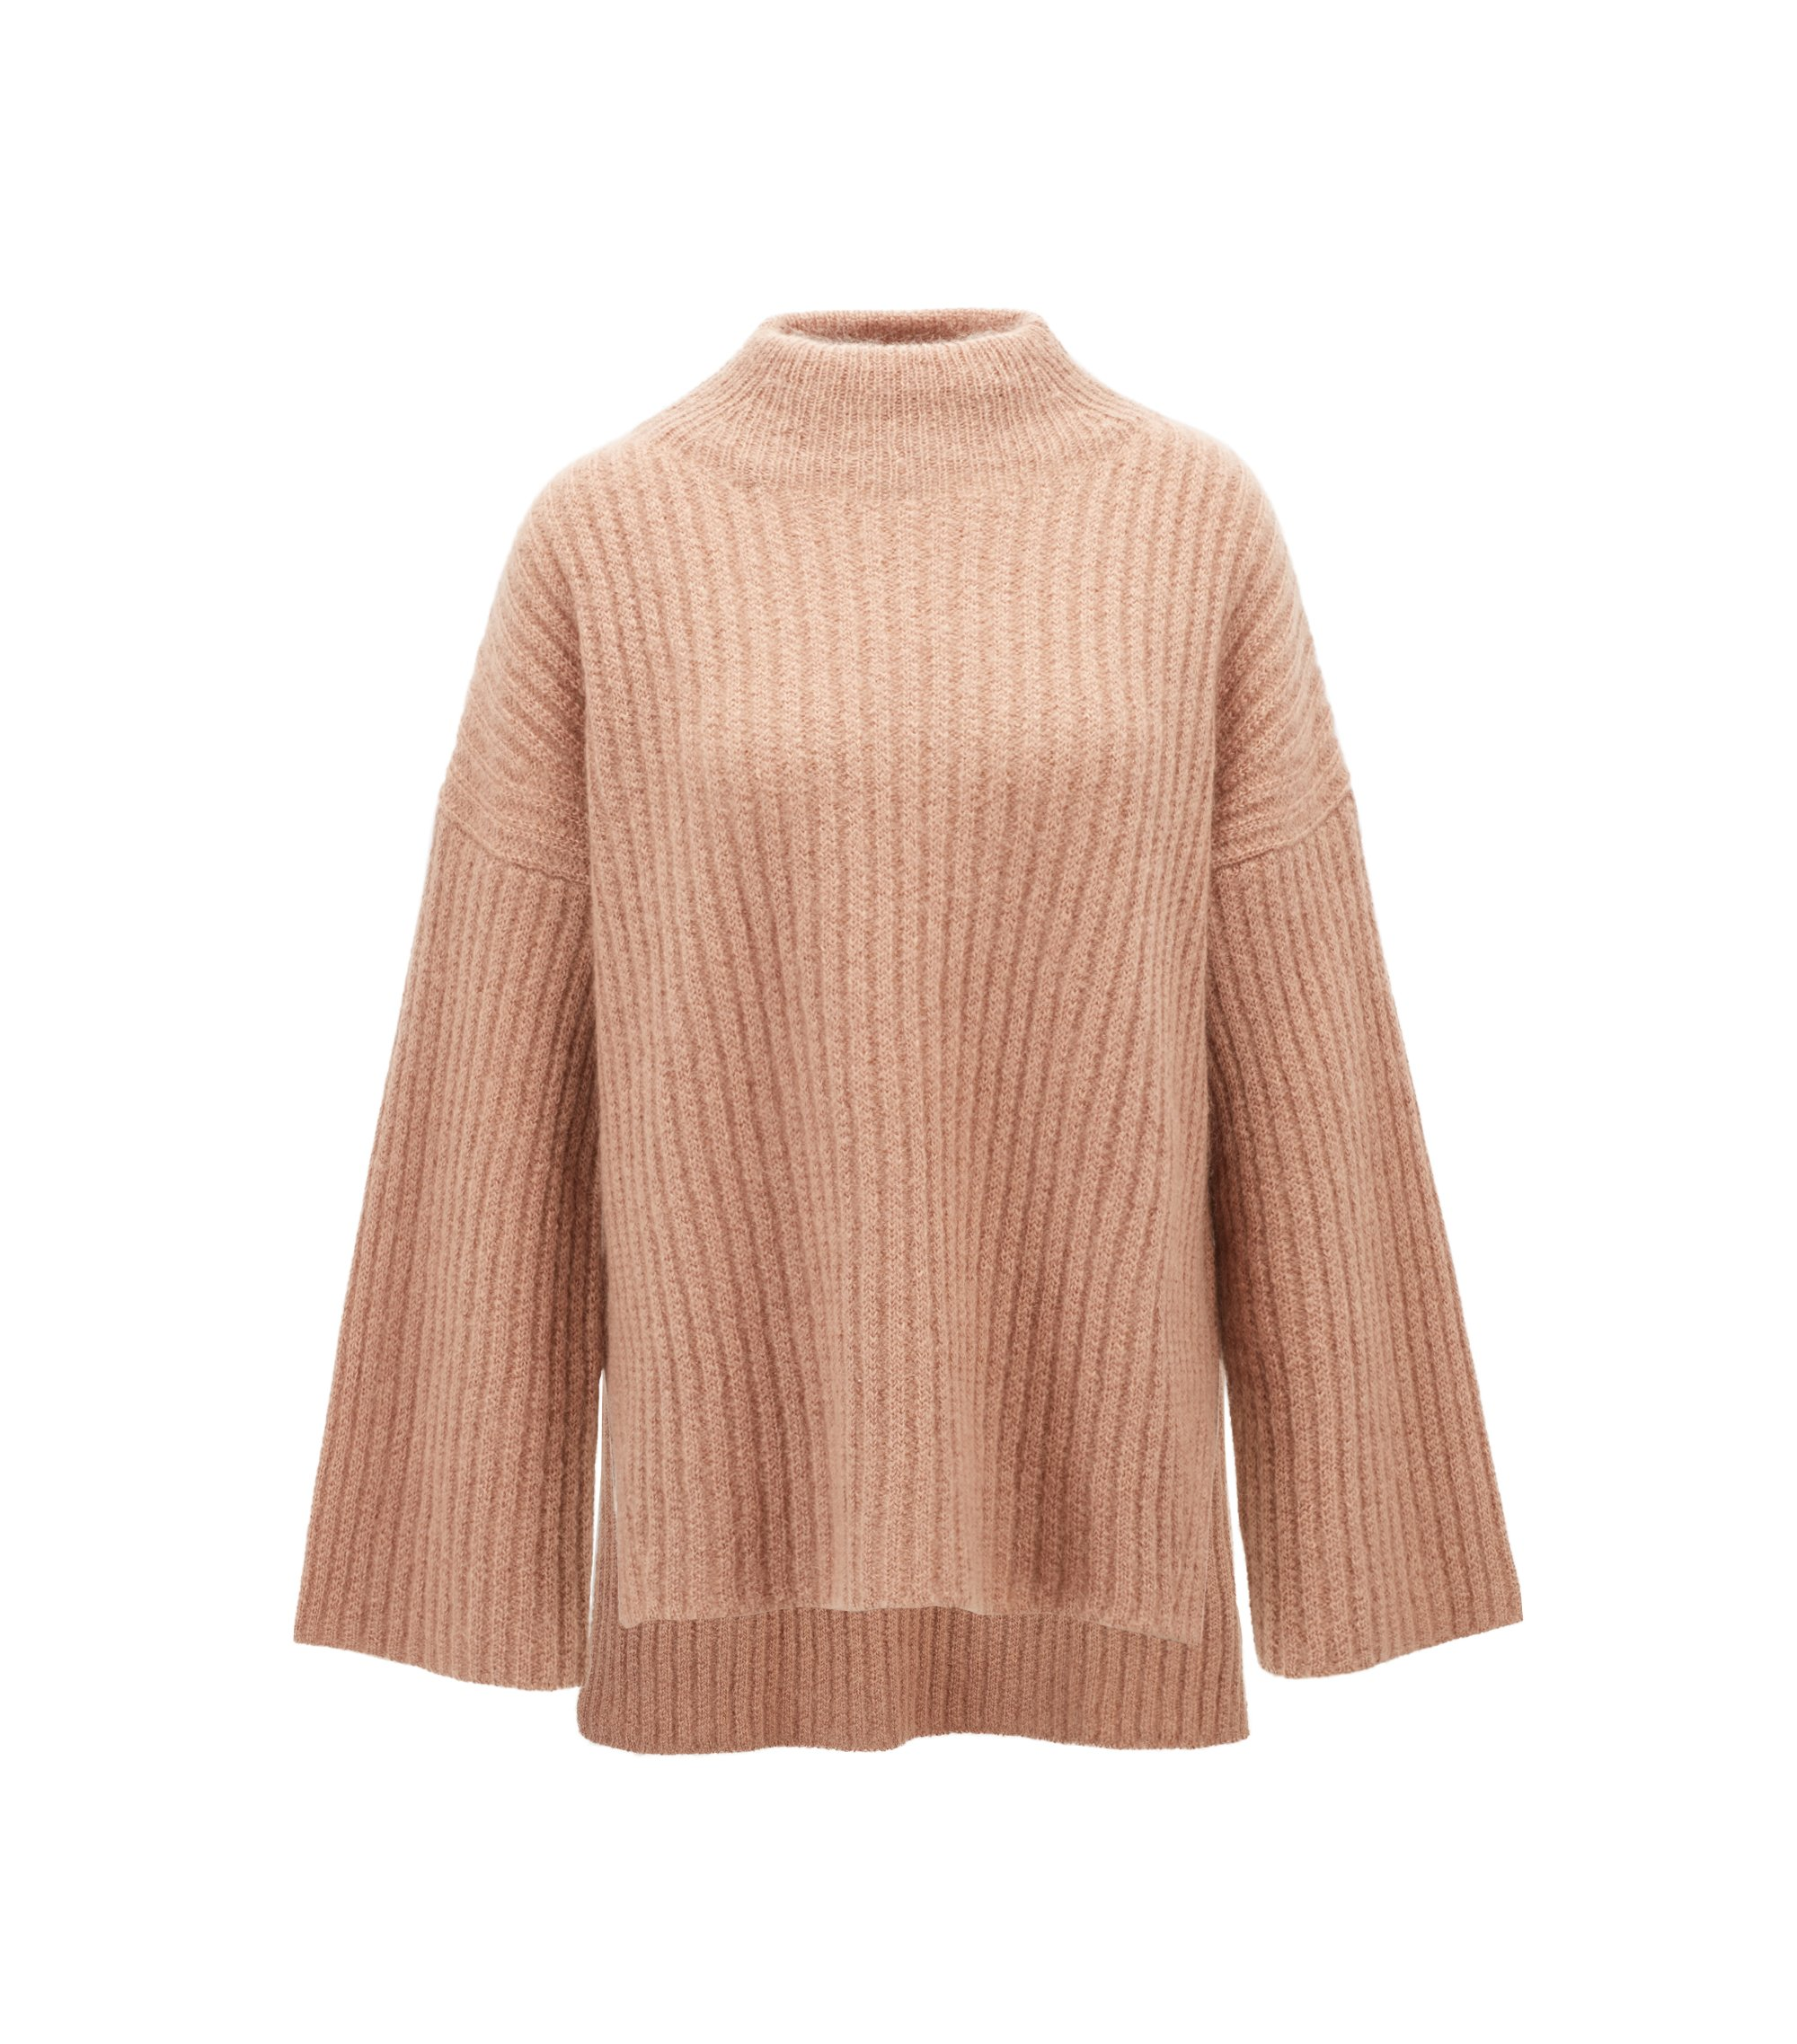 Funnel-neck sweater in an Italian wool blend, Brown